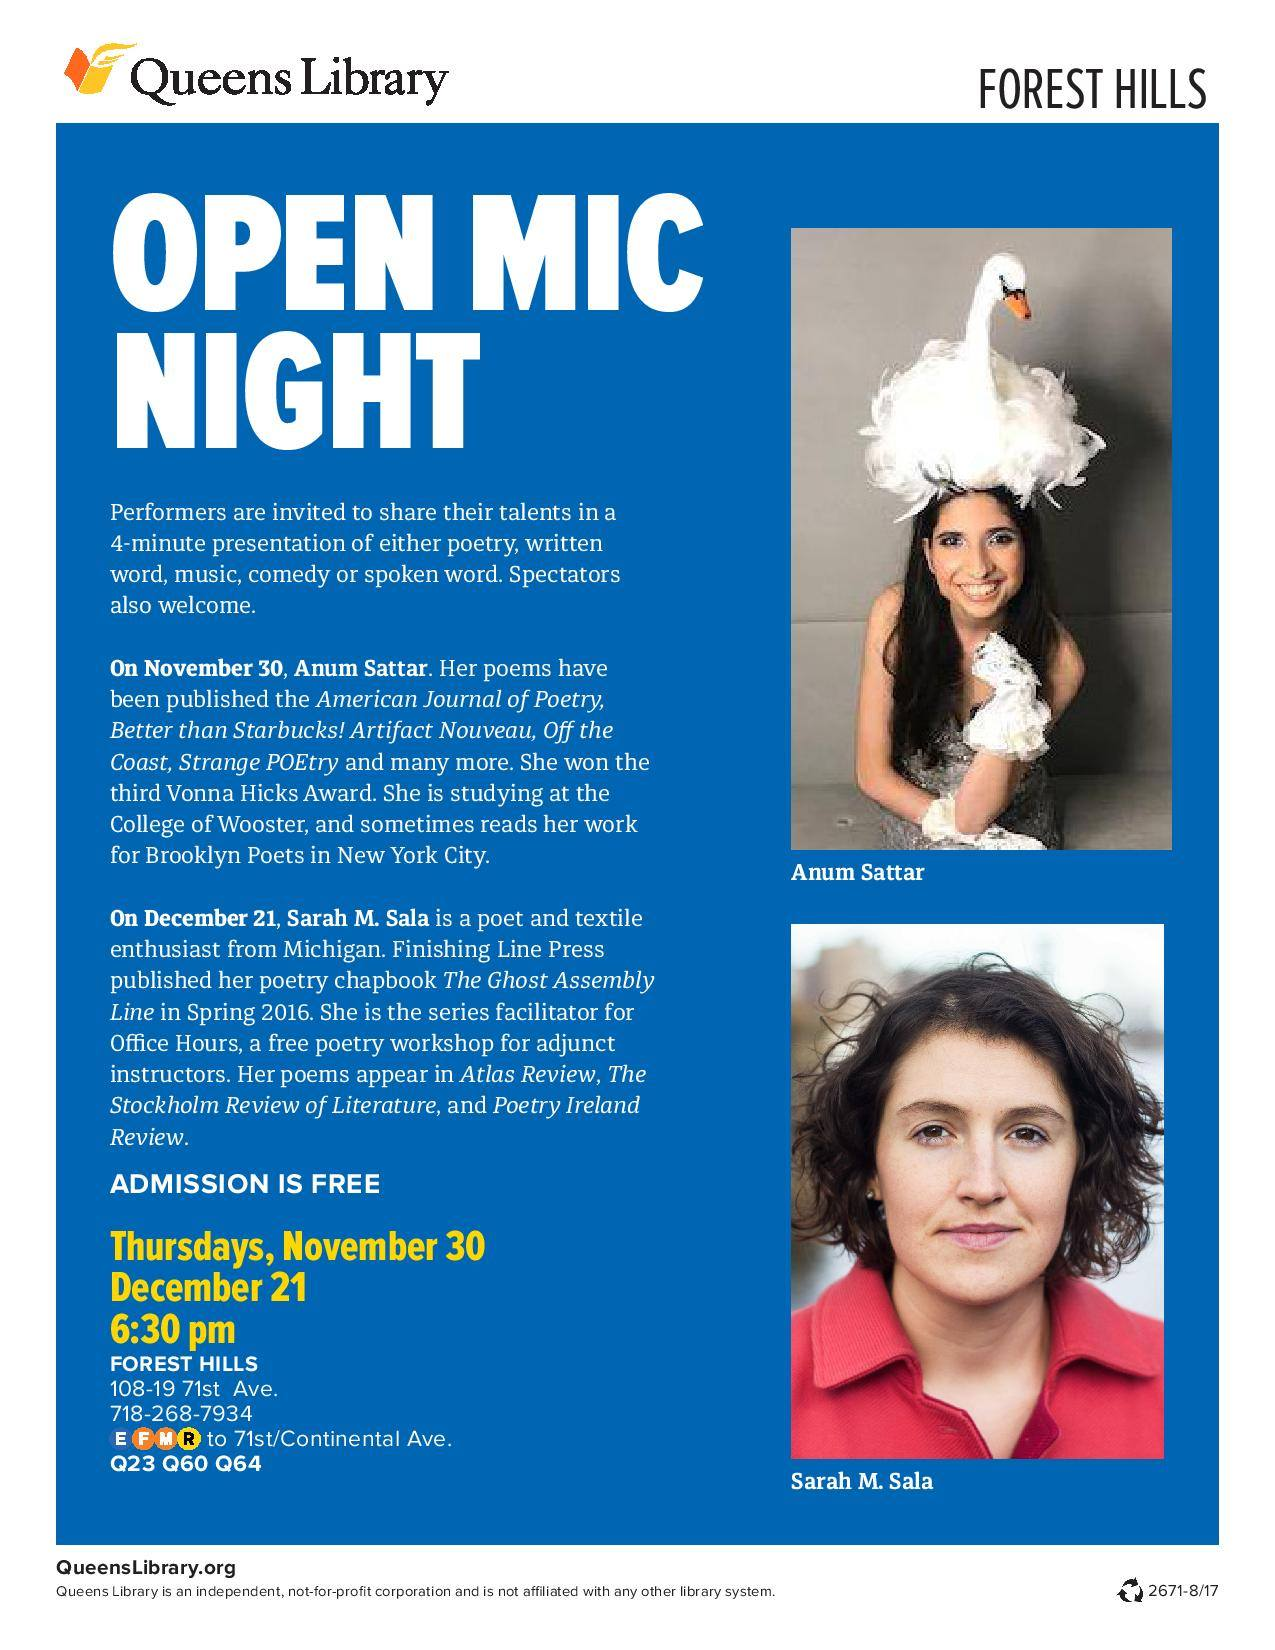 Queens Library Open Mic Night